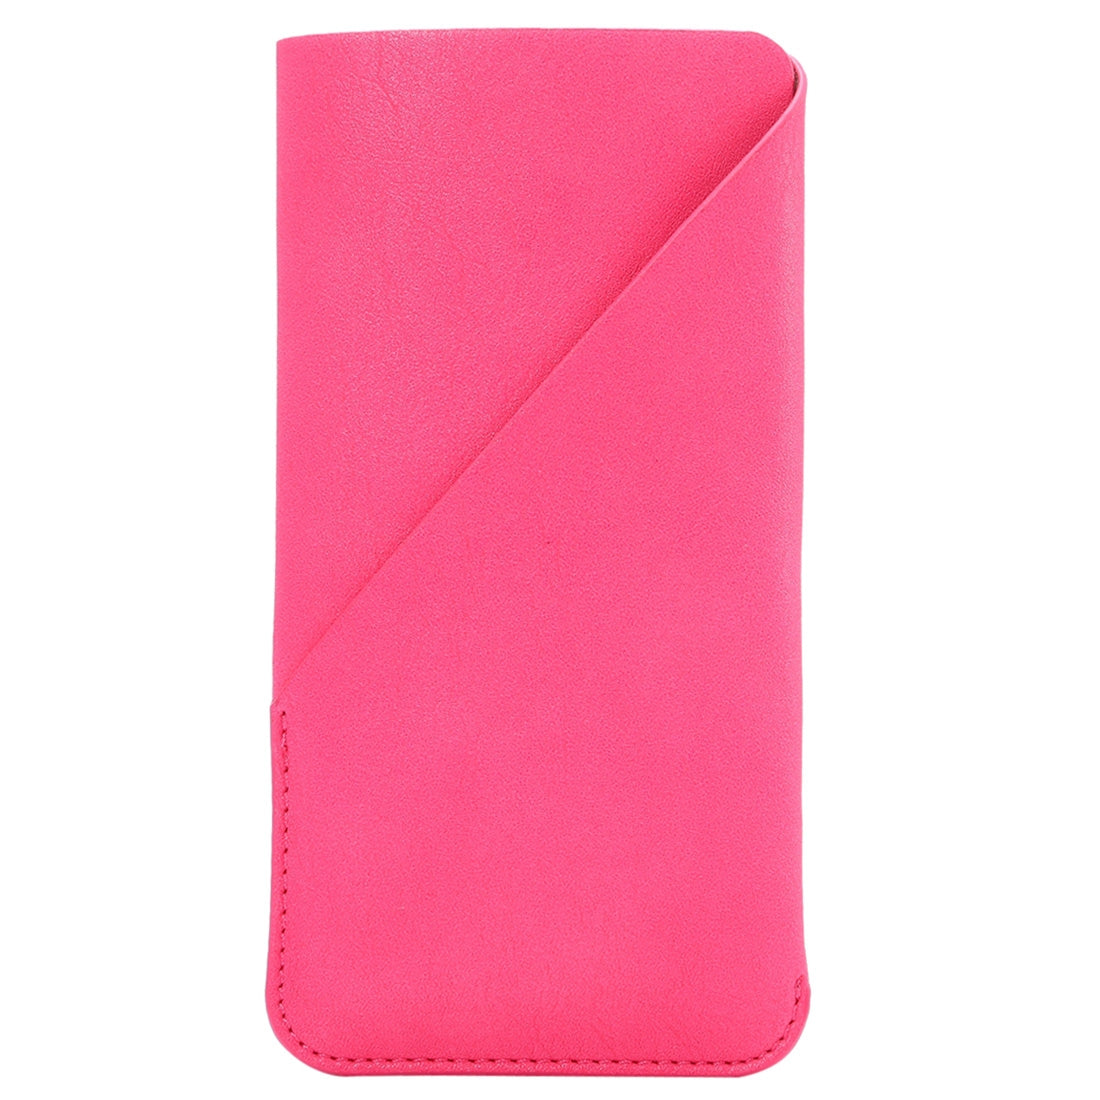 6.3 inch Universal Elephant Skin Texture Vertical Style Pouch Case Bag with Card Slot, For Galaxy Mega 6.3, Huawei Mate 8 / Mate 7, etc.(Magenta)